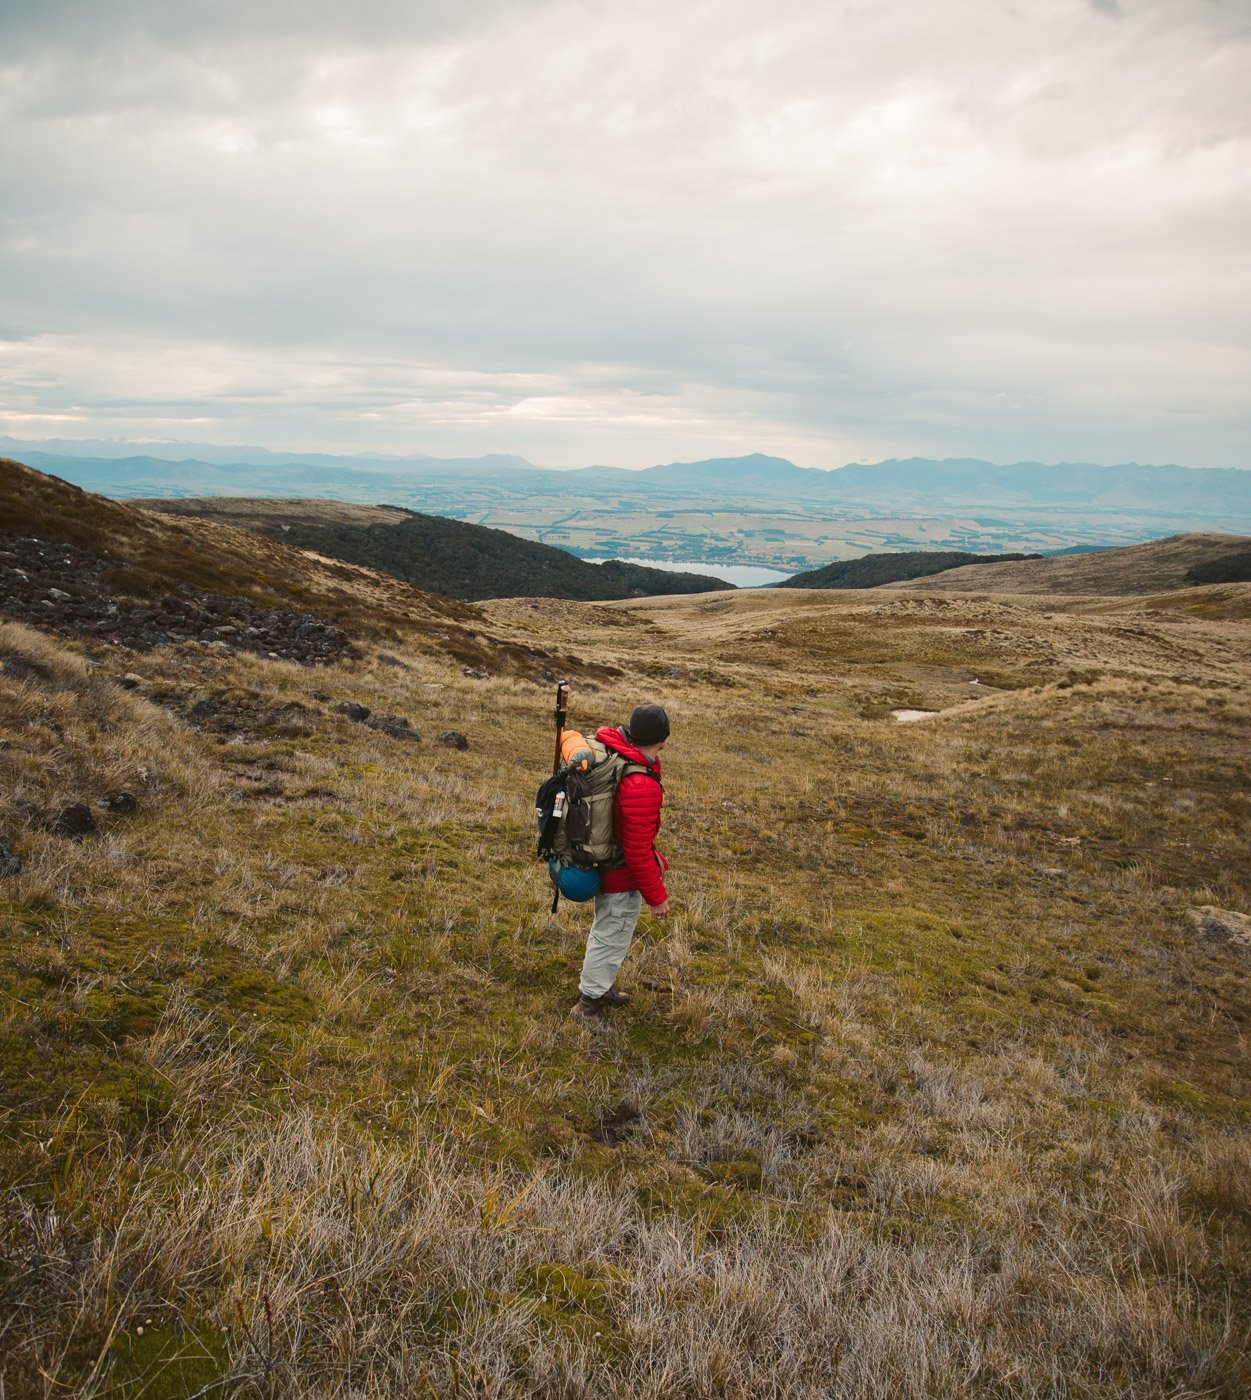 TUSSOCK PLAINS HIKING NEAR THE LUXMORE HUT ON THE KEPLER